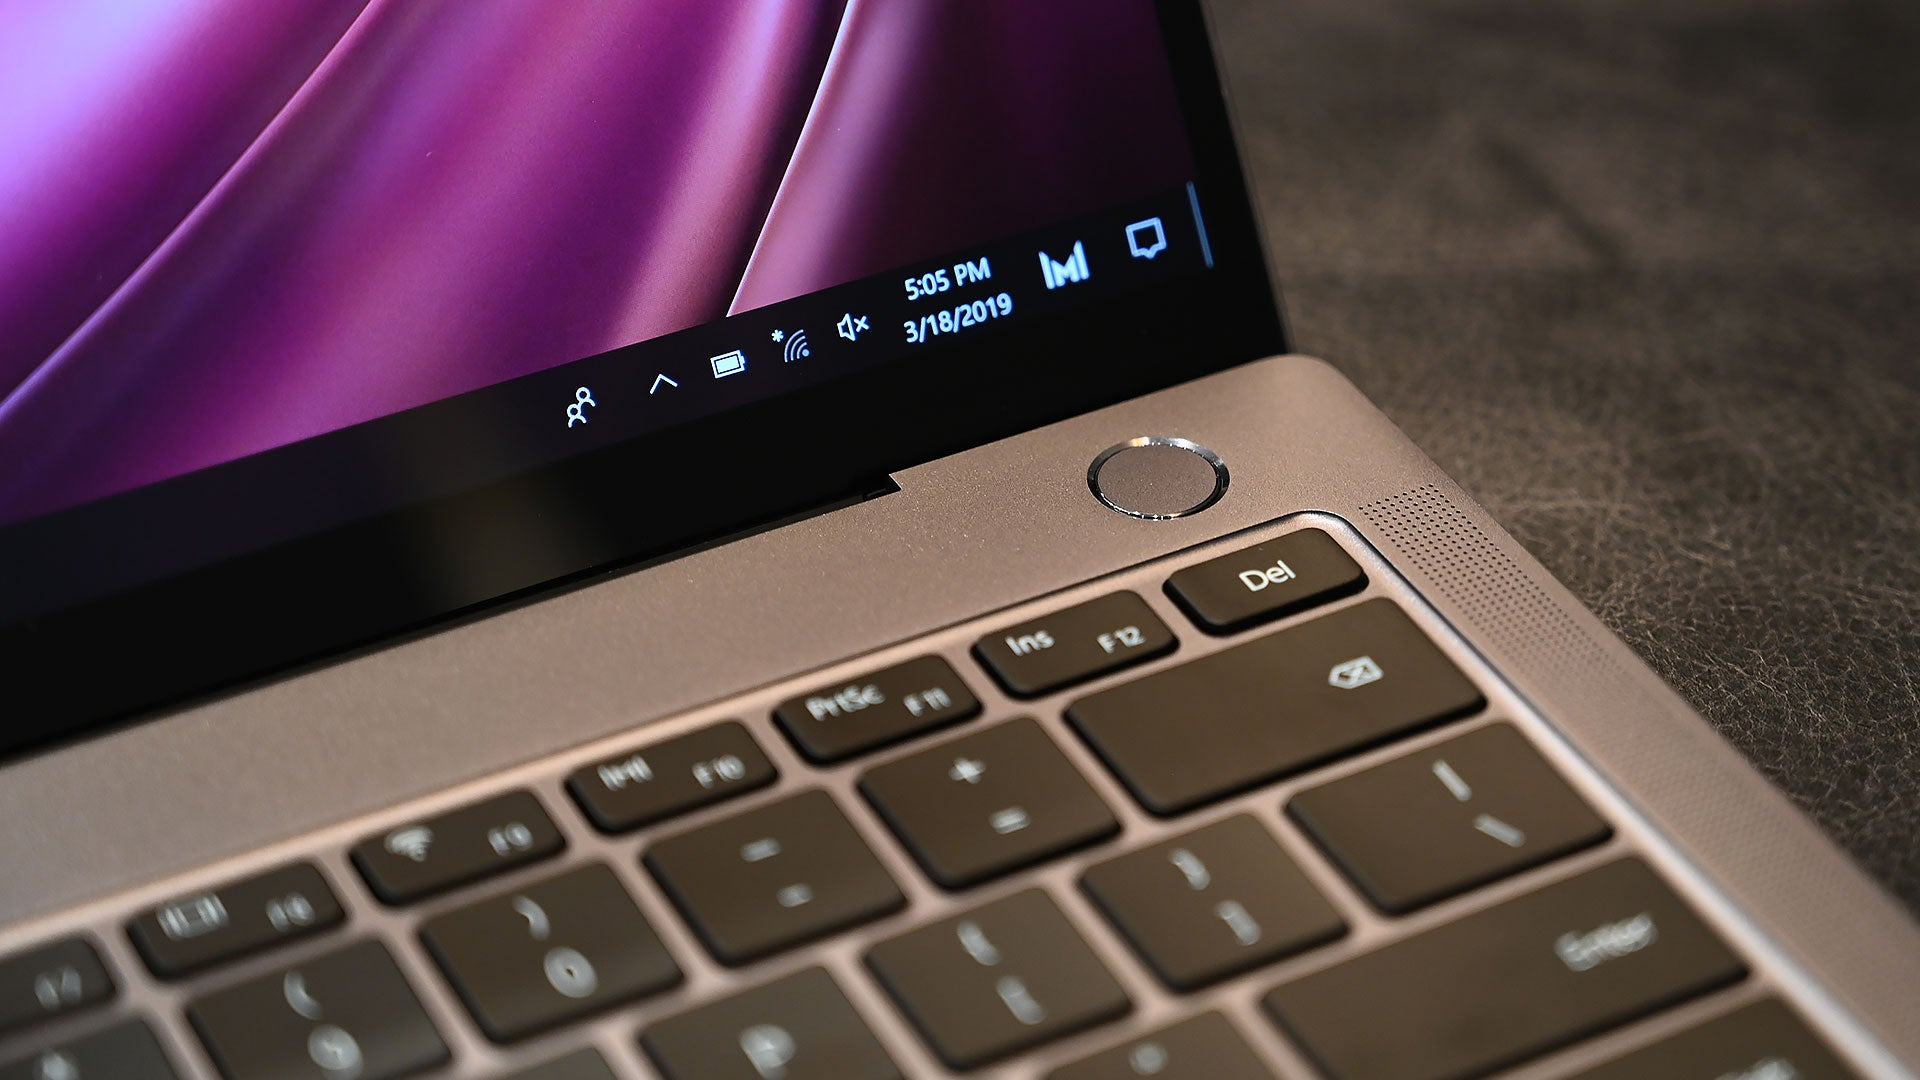 Huawei MateBook X Pro 2019 Review: An Improved MacBook Pro